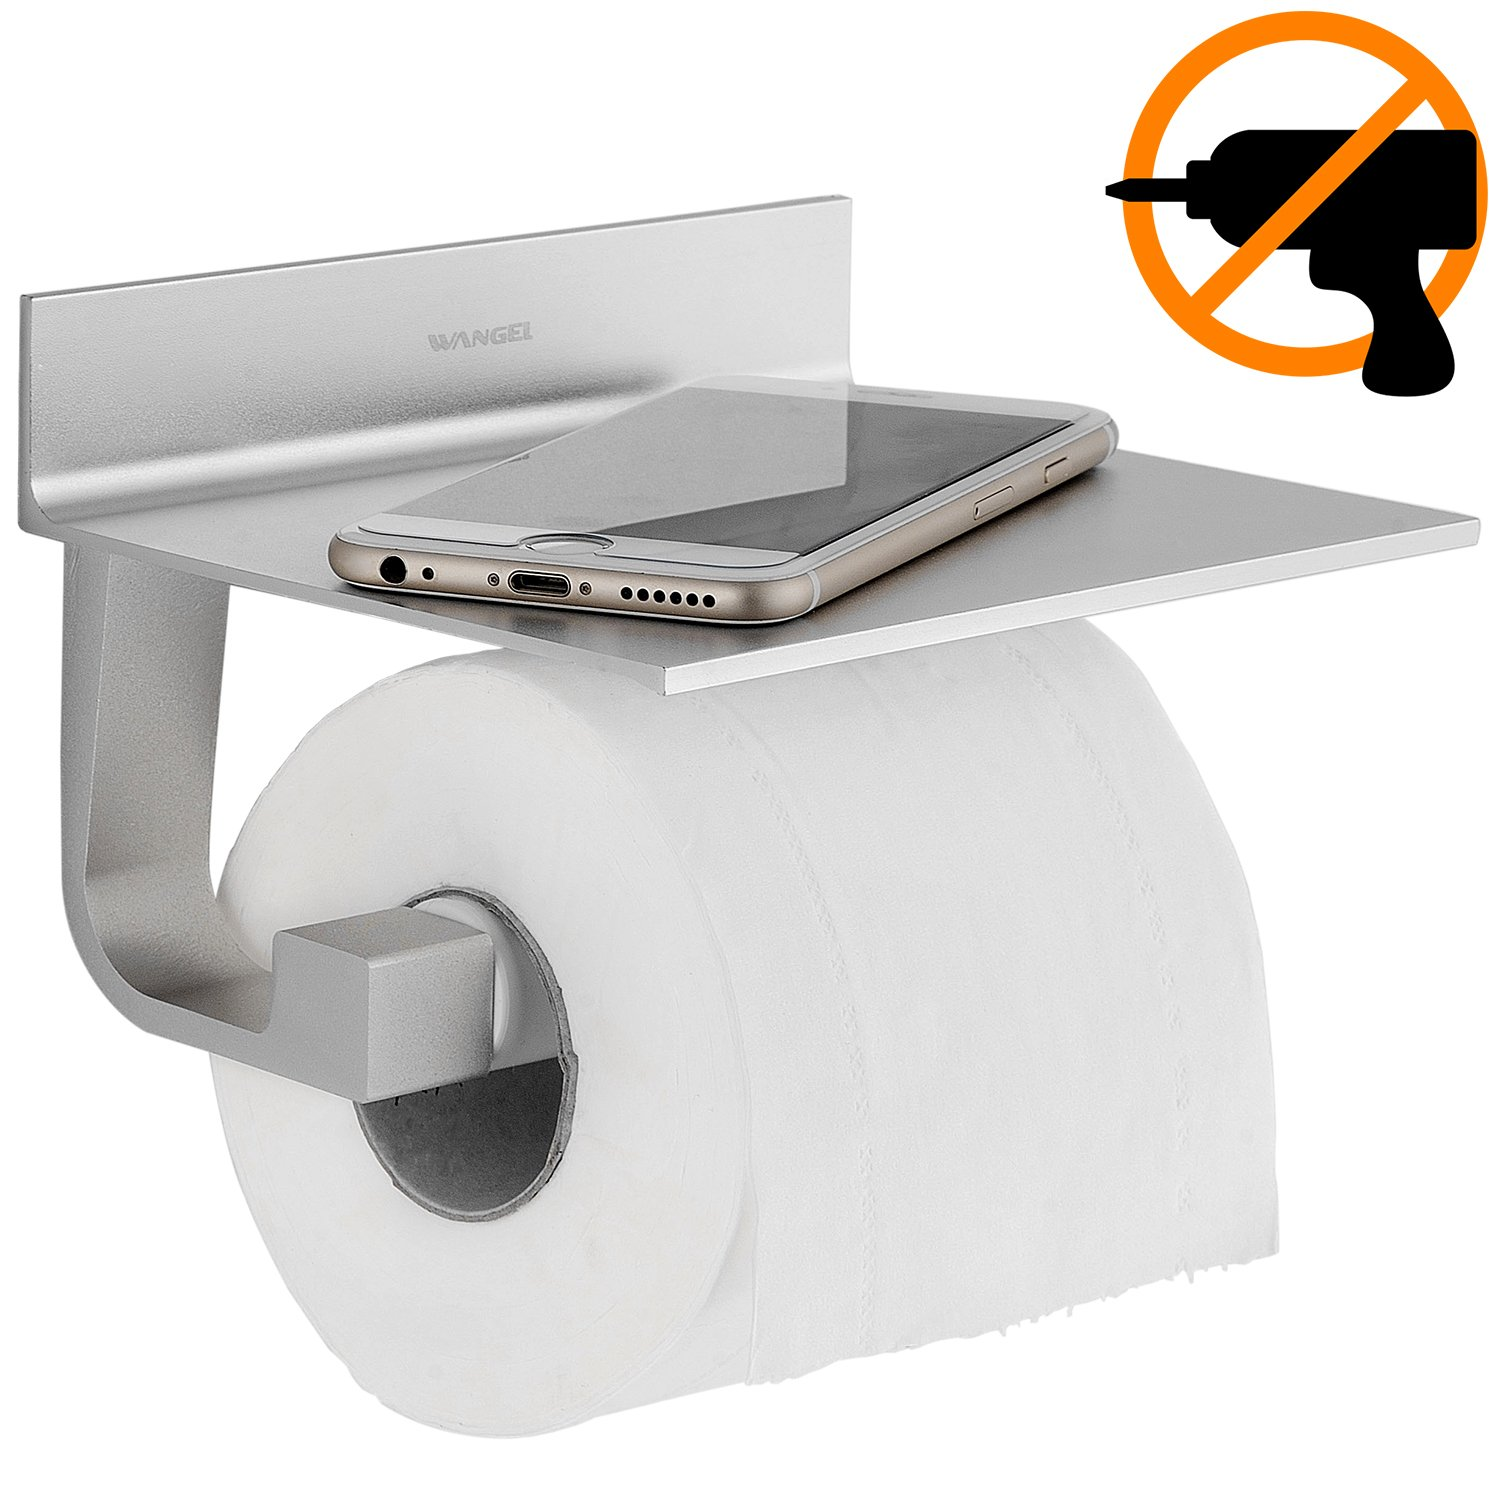 Wangel Toilet Roll Holder Without Drilling, Toilet Paper Holder with Shelf, Patented Glue + Self-Adhesive, Aluminum, Matte Finish